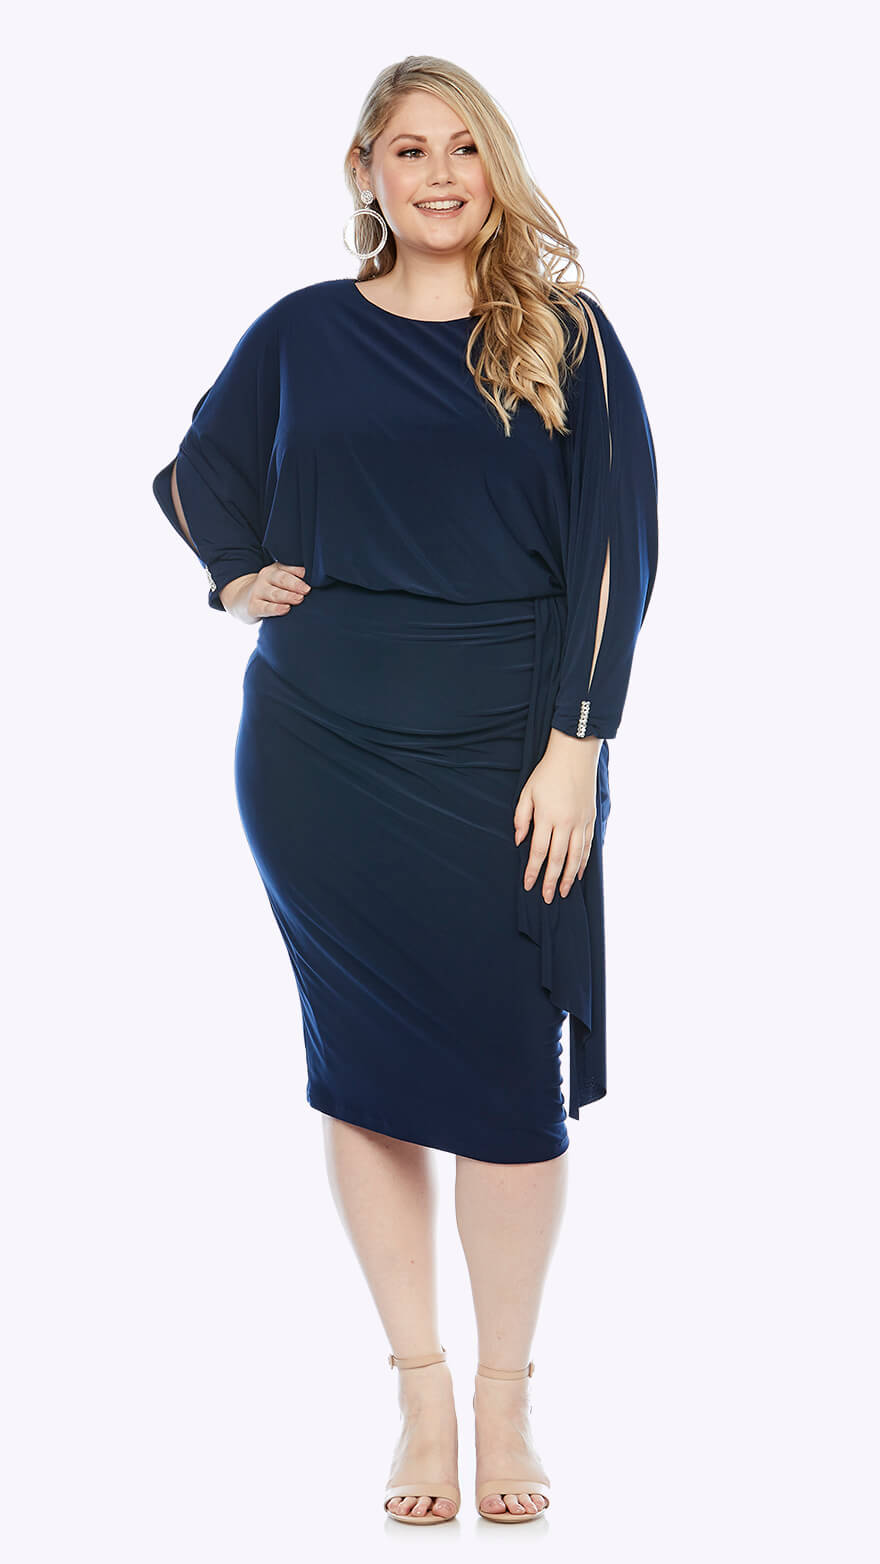 LJ0270 Blouson style knee-length dress with wrap style skirt and open 3/4 sleeve